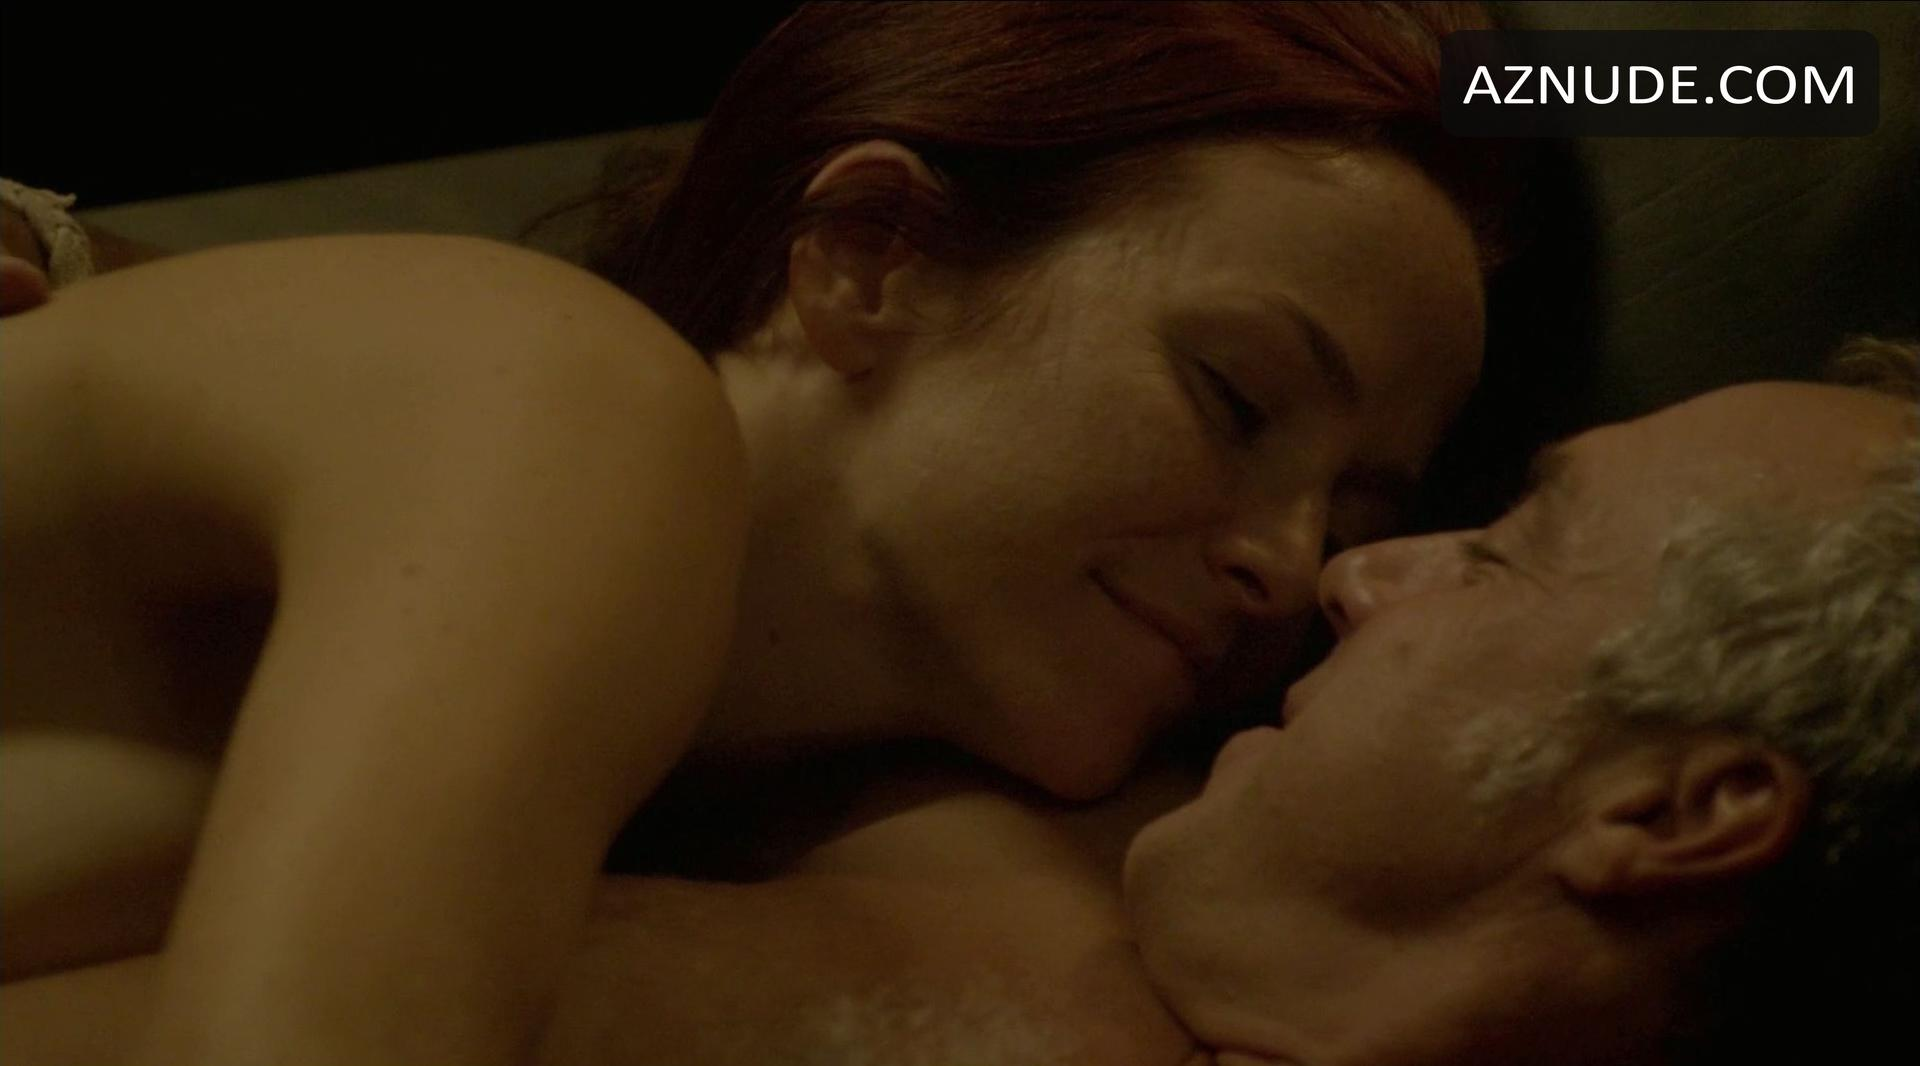 Annie wersching nude pictures and videos nonsense!